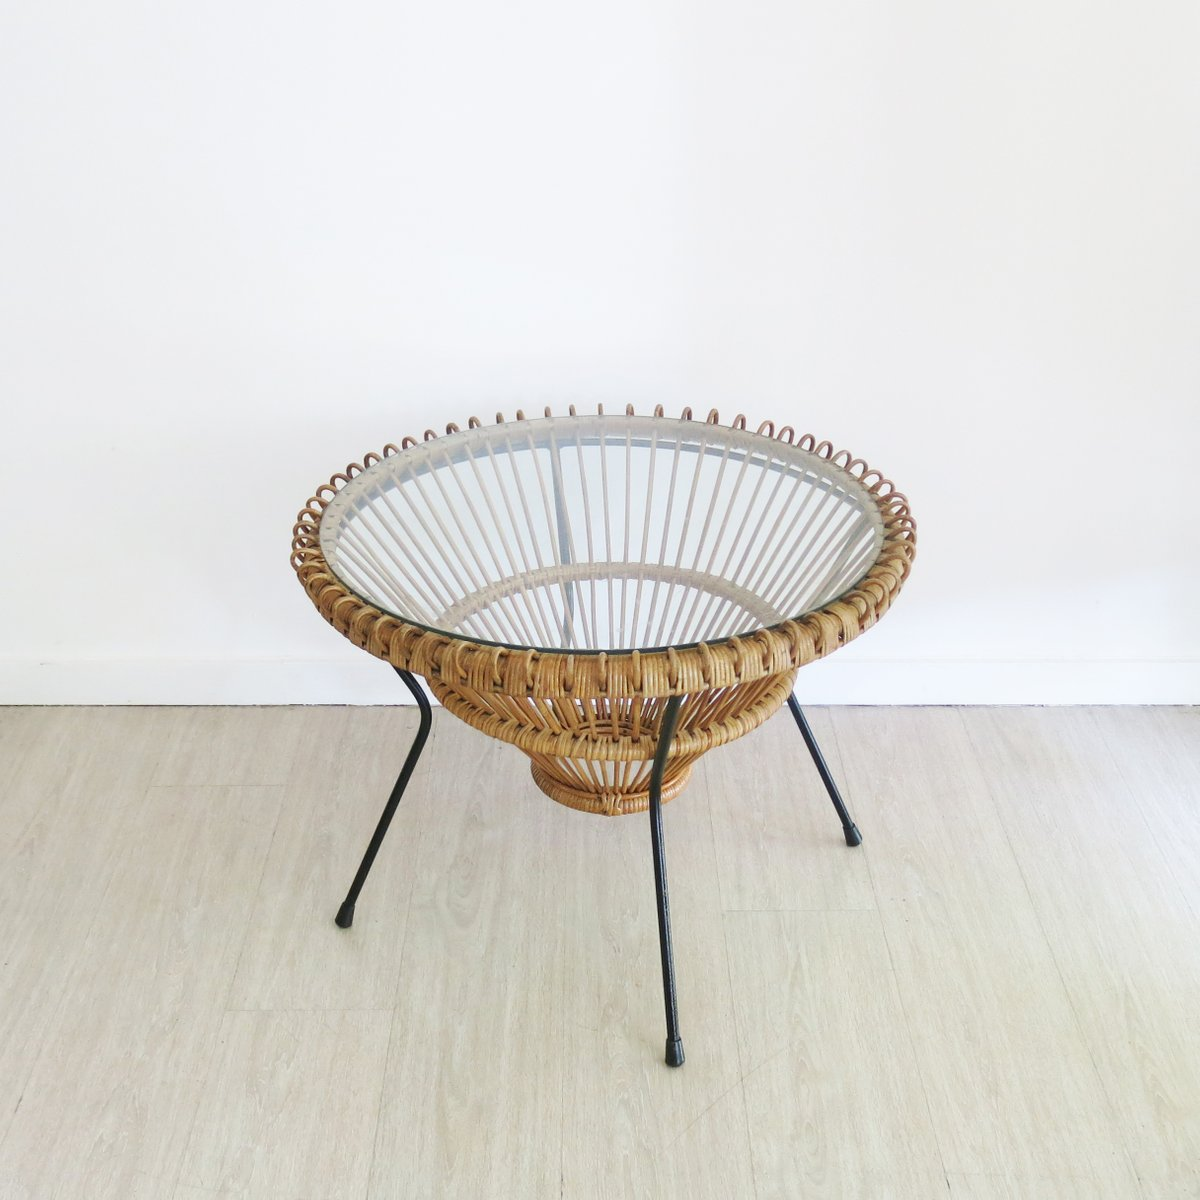 Rattan coffee table by franco albini 1950s for sale at pamono rattan coffee table by franco albini 1950s geotapseo Images